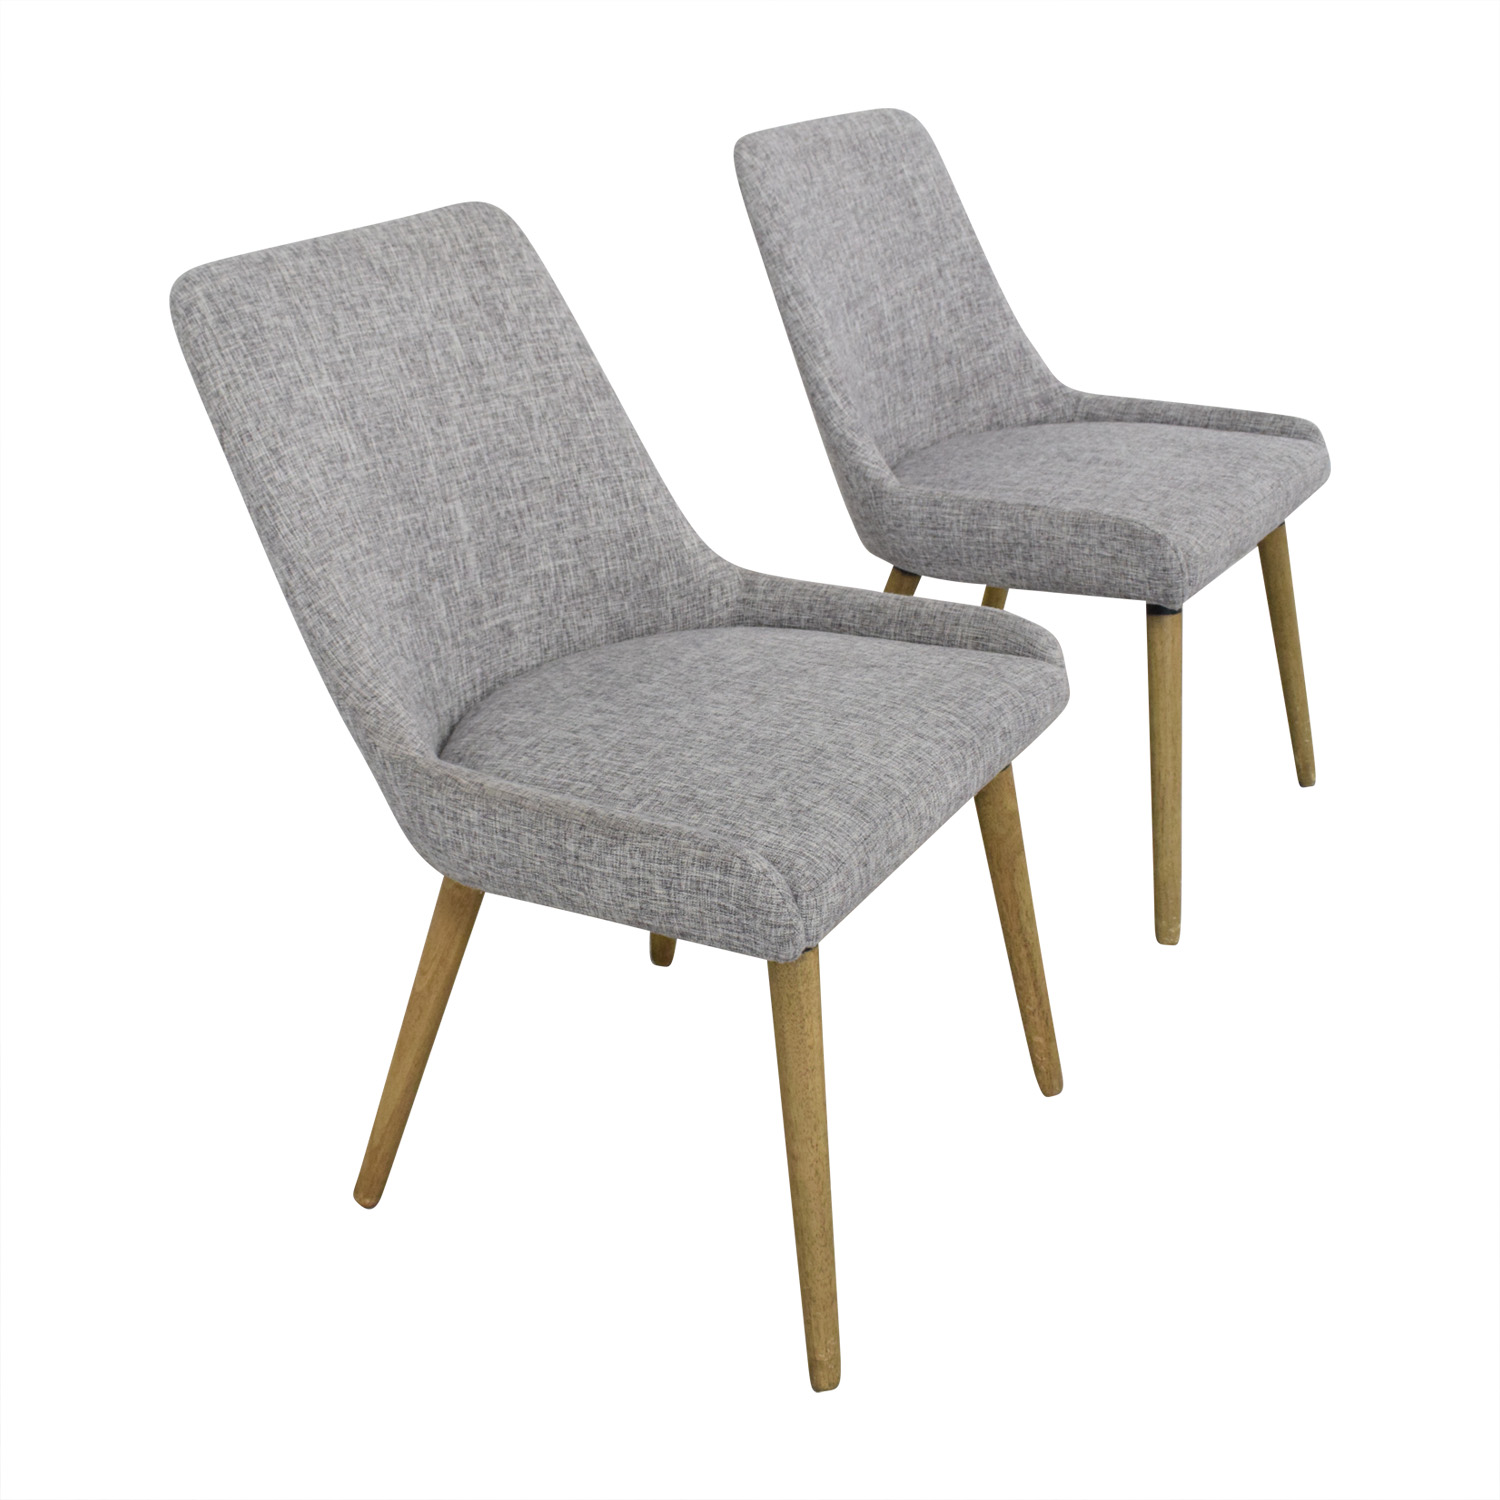 West Elm West Elm Mid Century Upholstered Dining Chairs discount